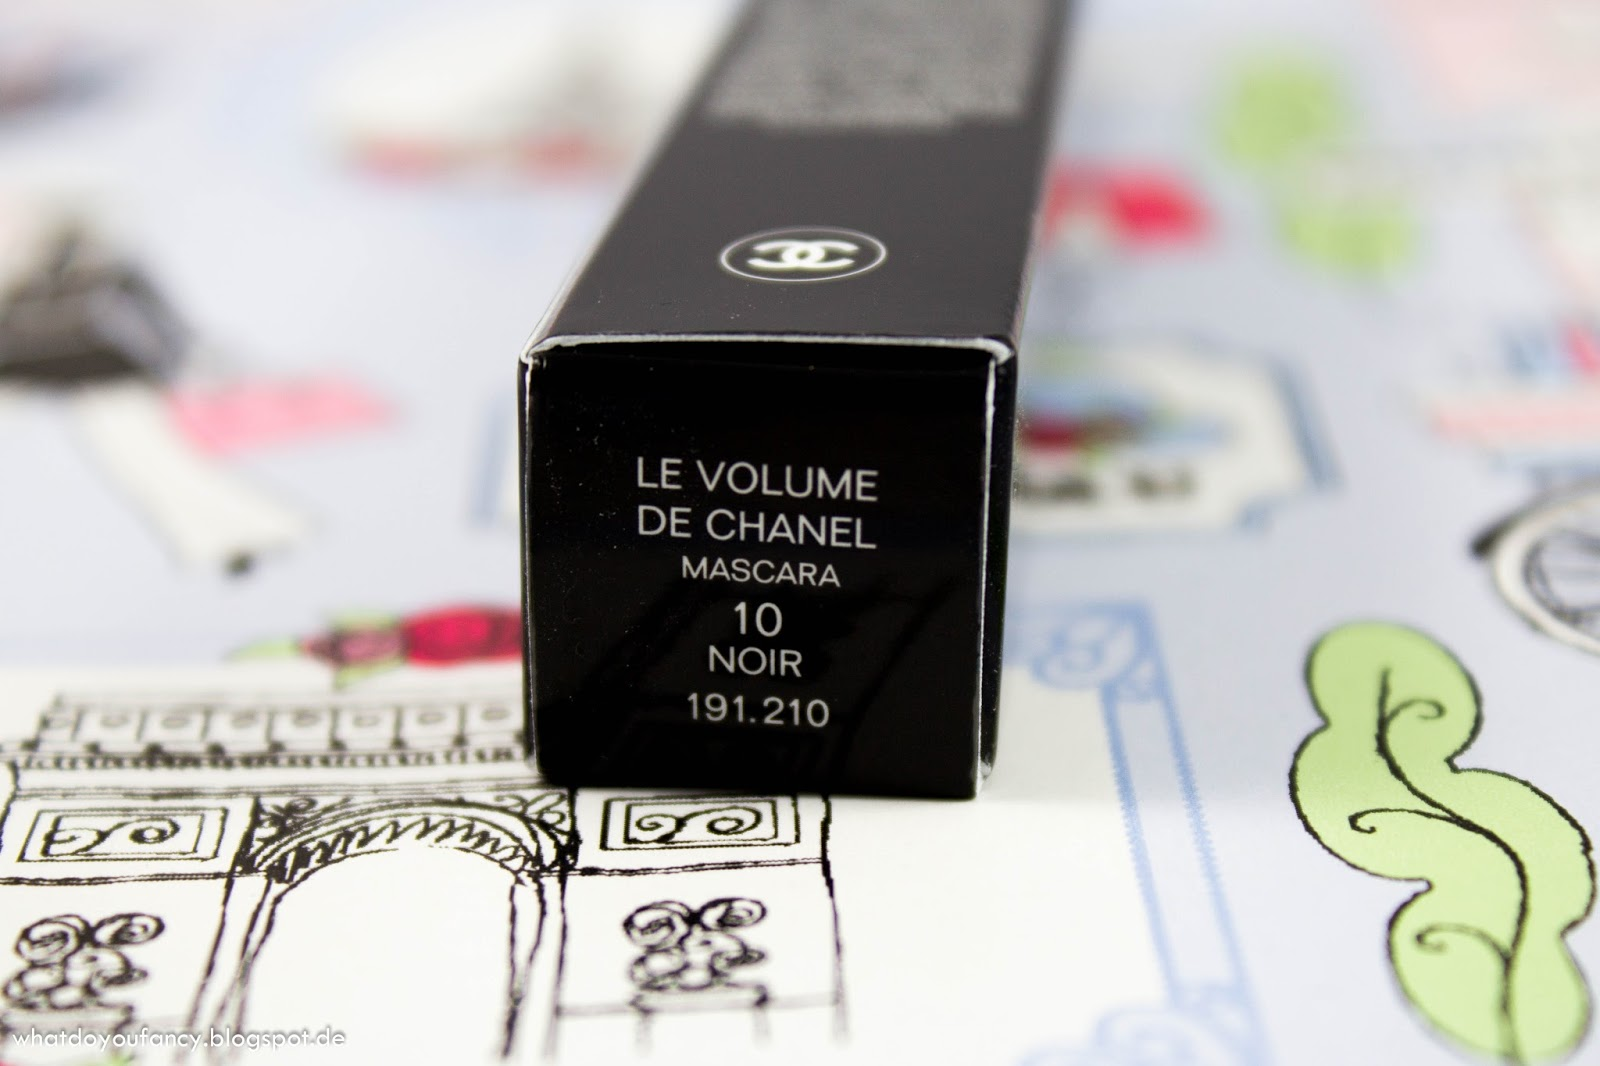 Le Volume de Chanel Mascara – meine liebste High End Mascara